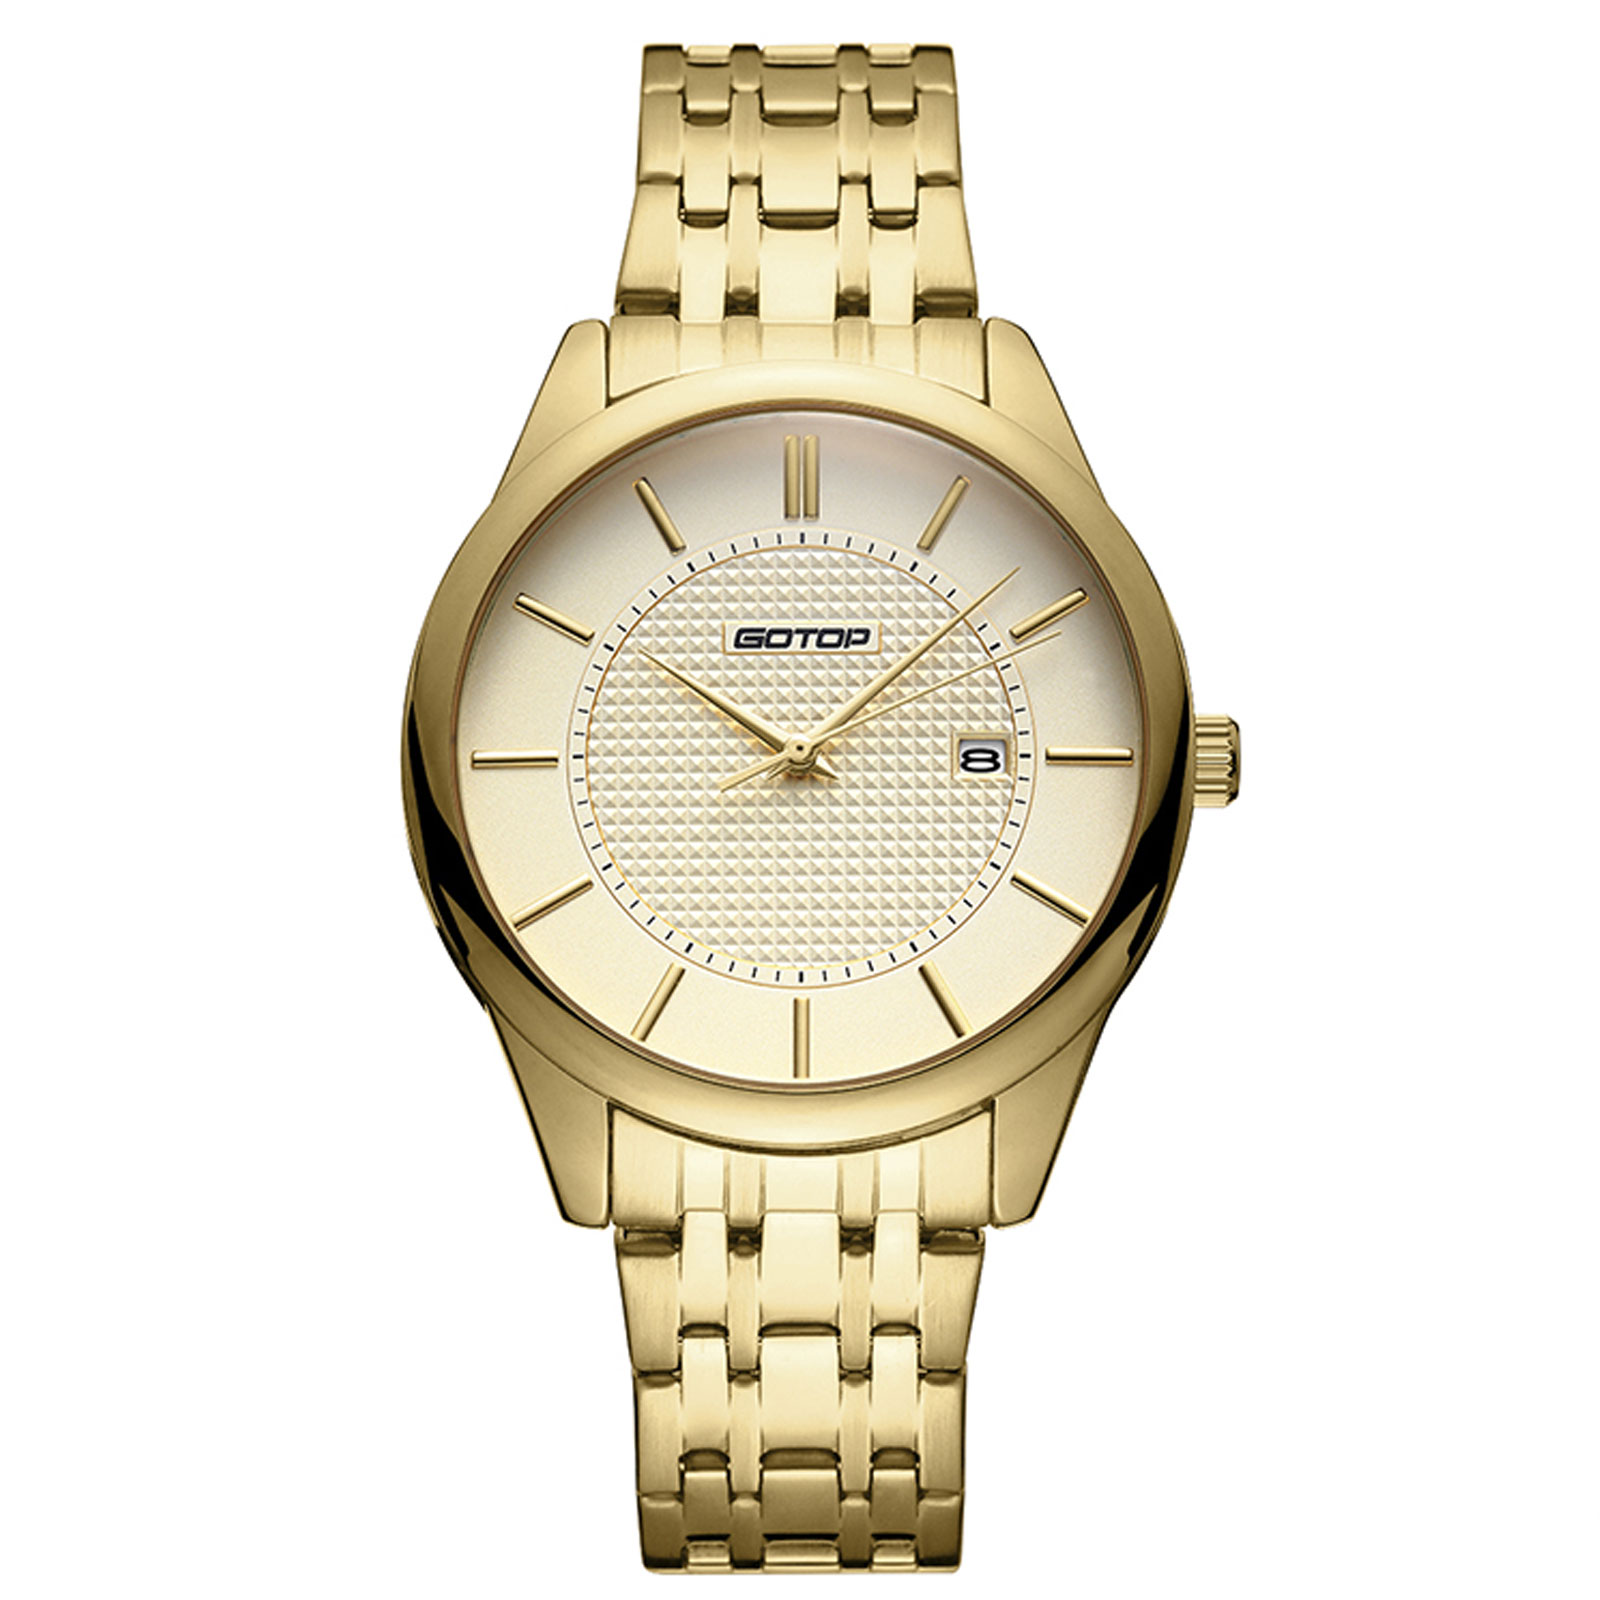 Gold Stainless-Steel Men's Watch With Metal Bracelet